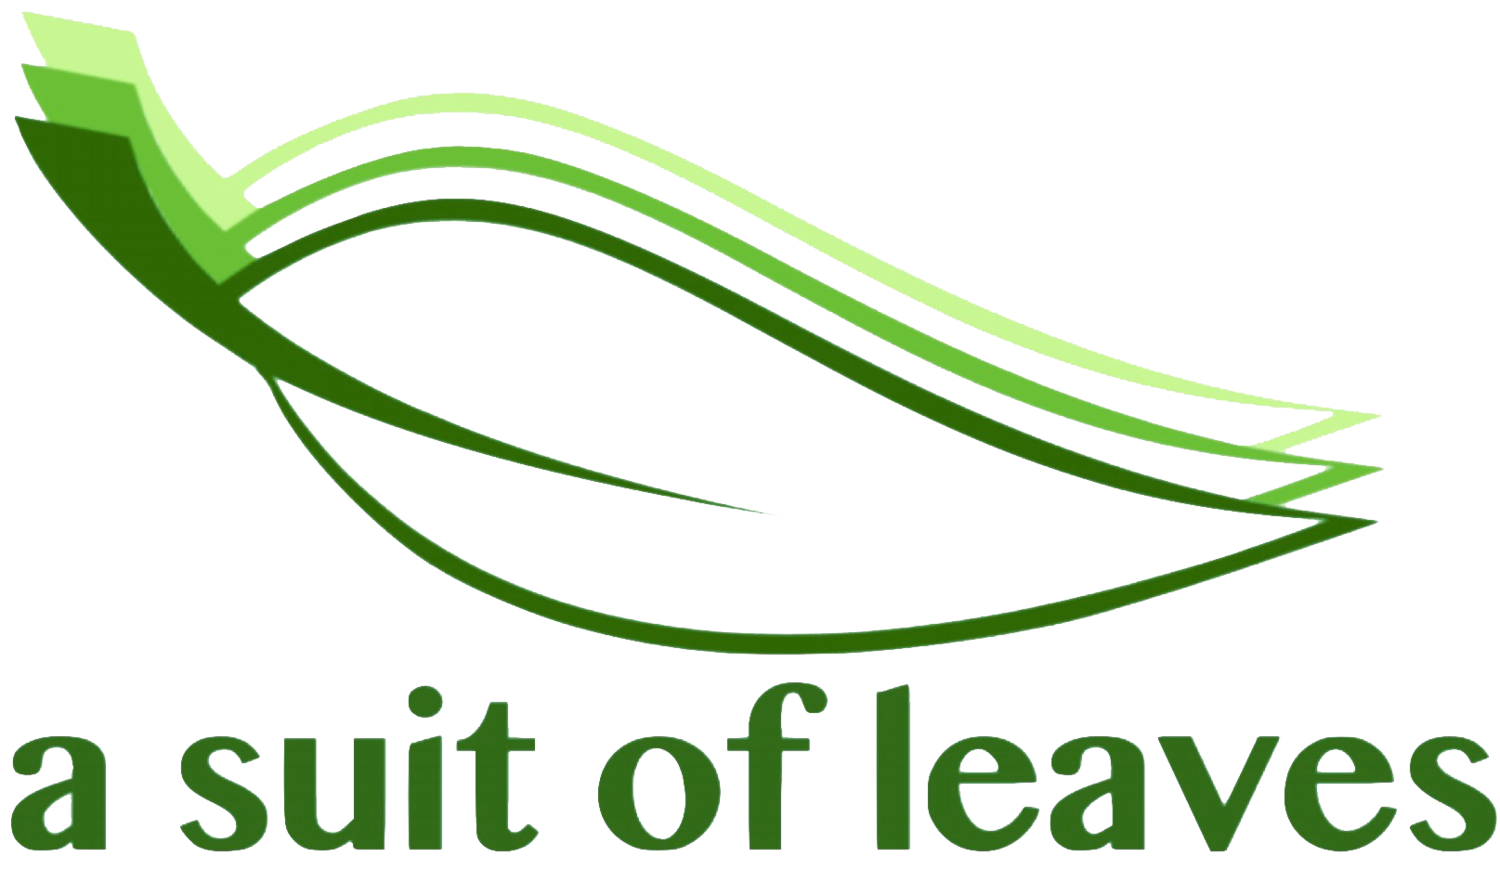 a suit of leaves